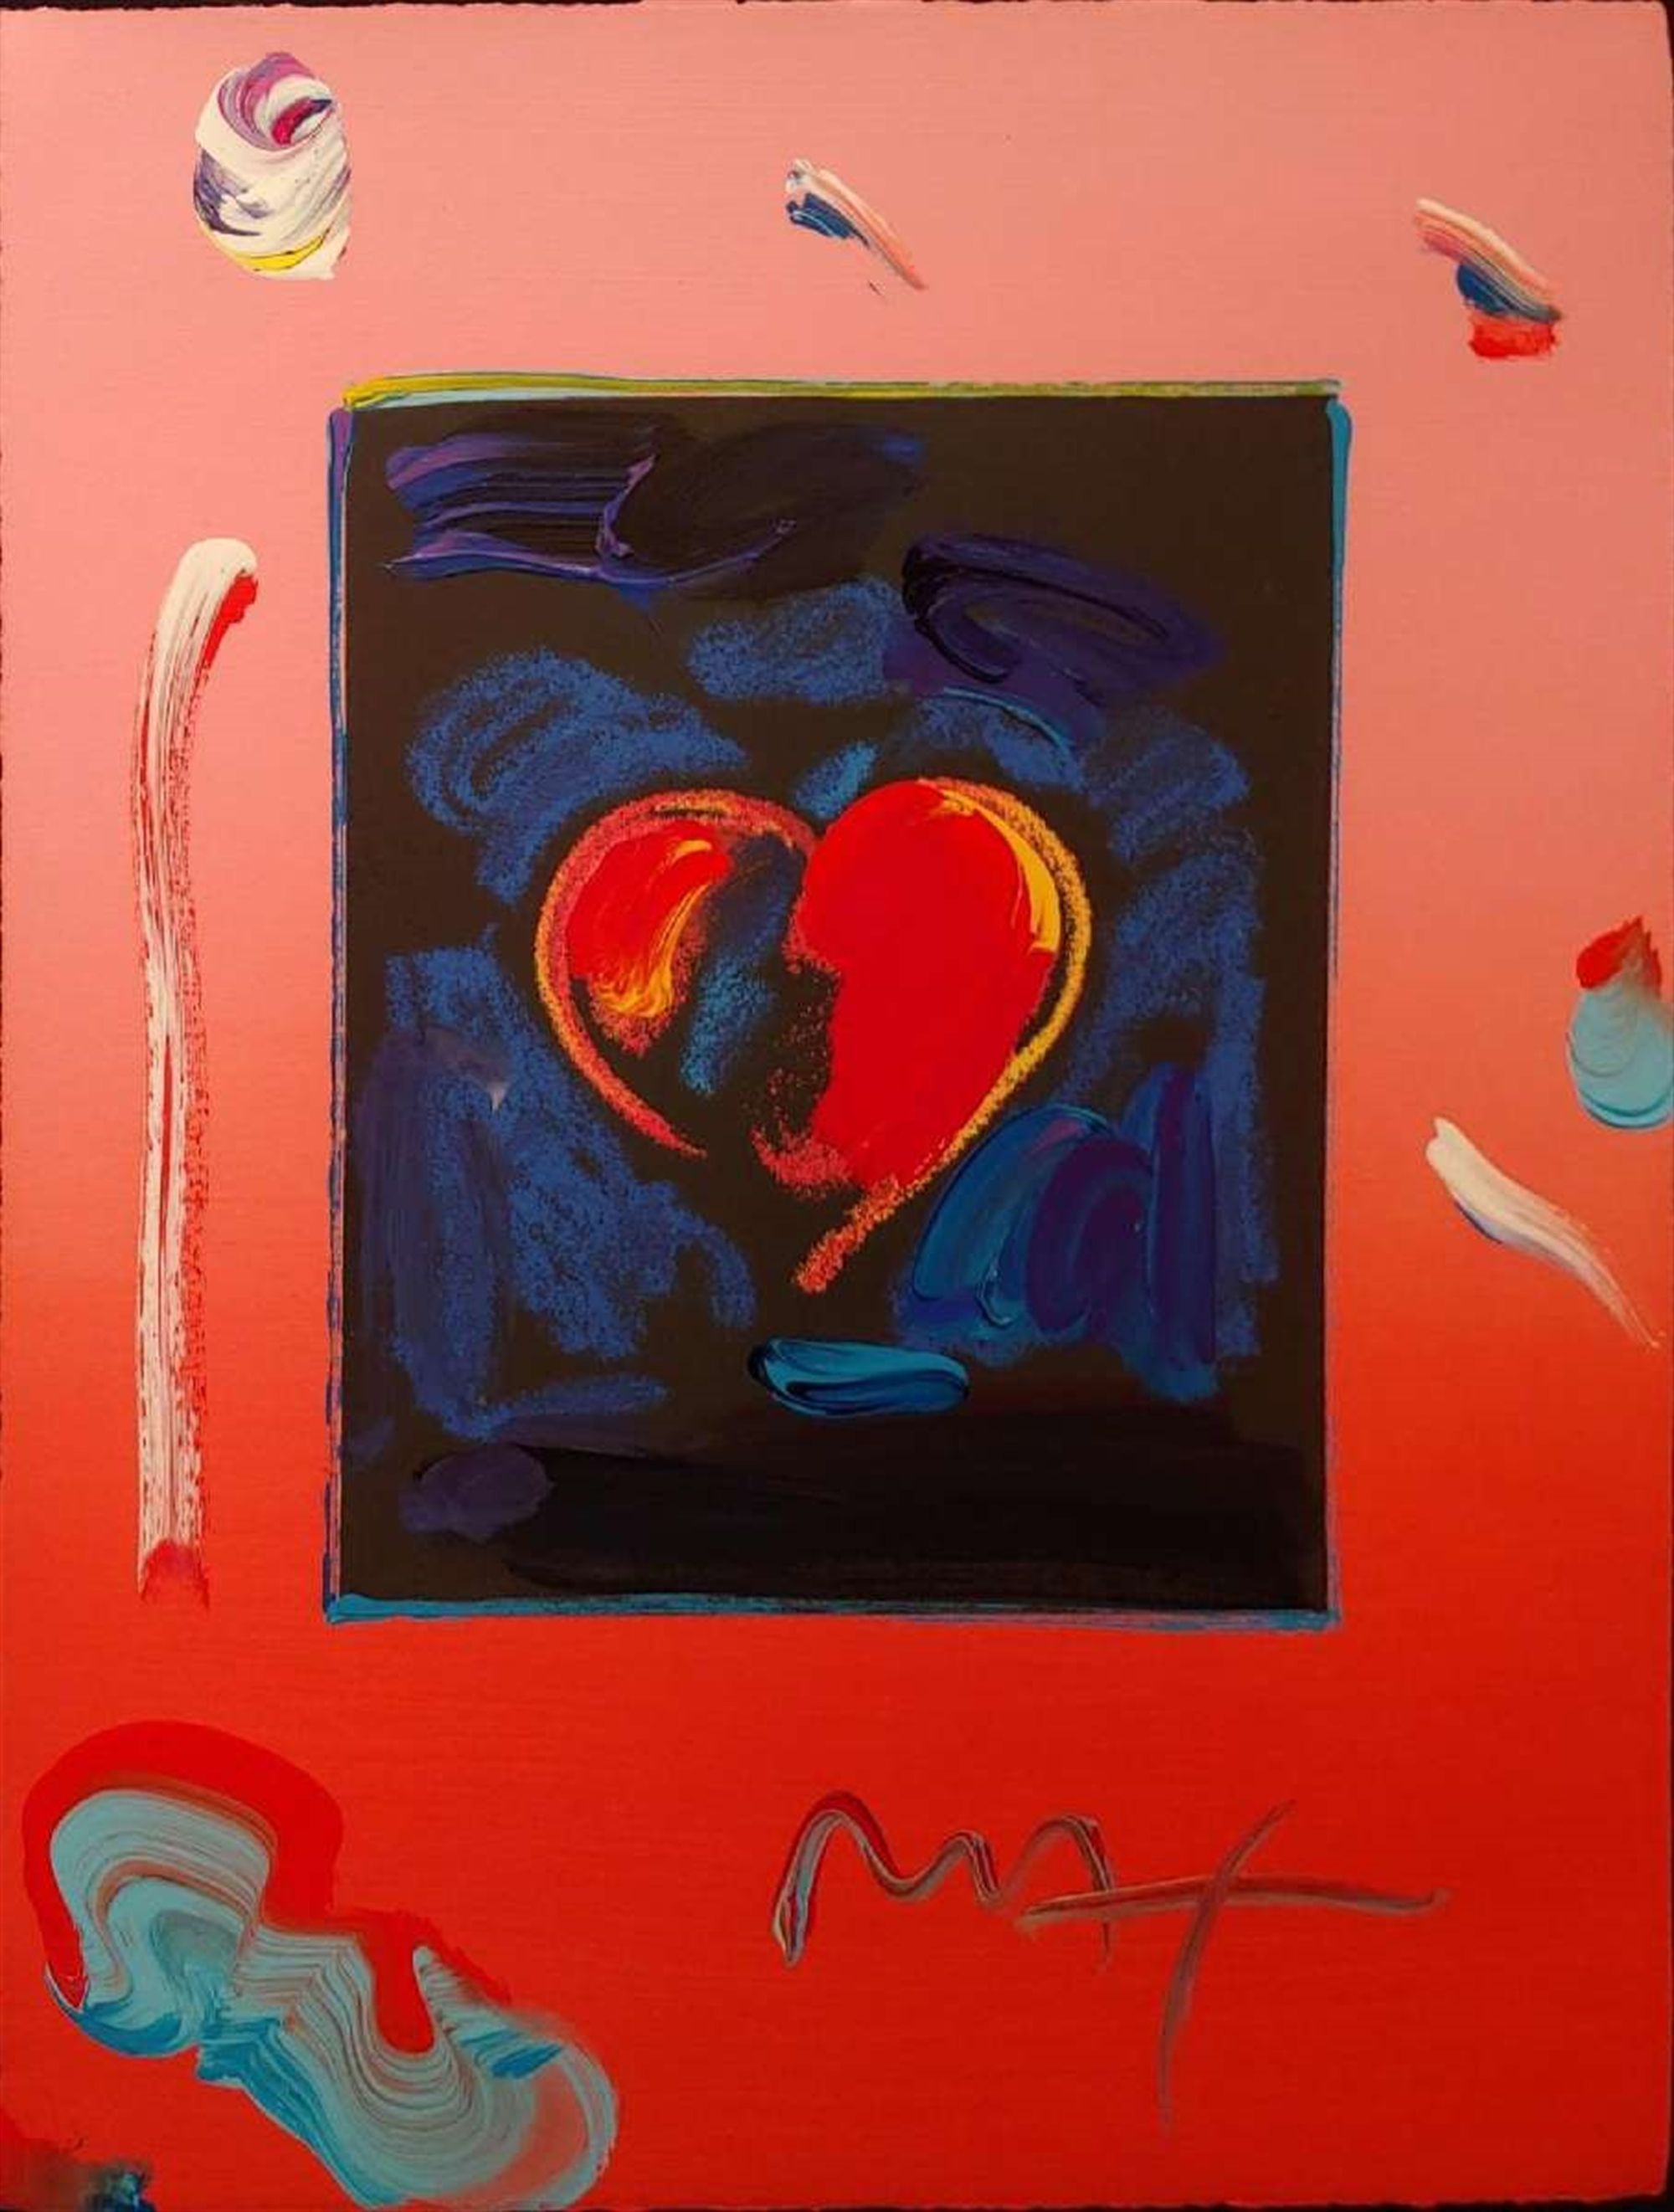 ROMANCE SUITE: HEART by Peter Max